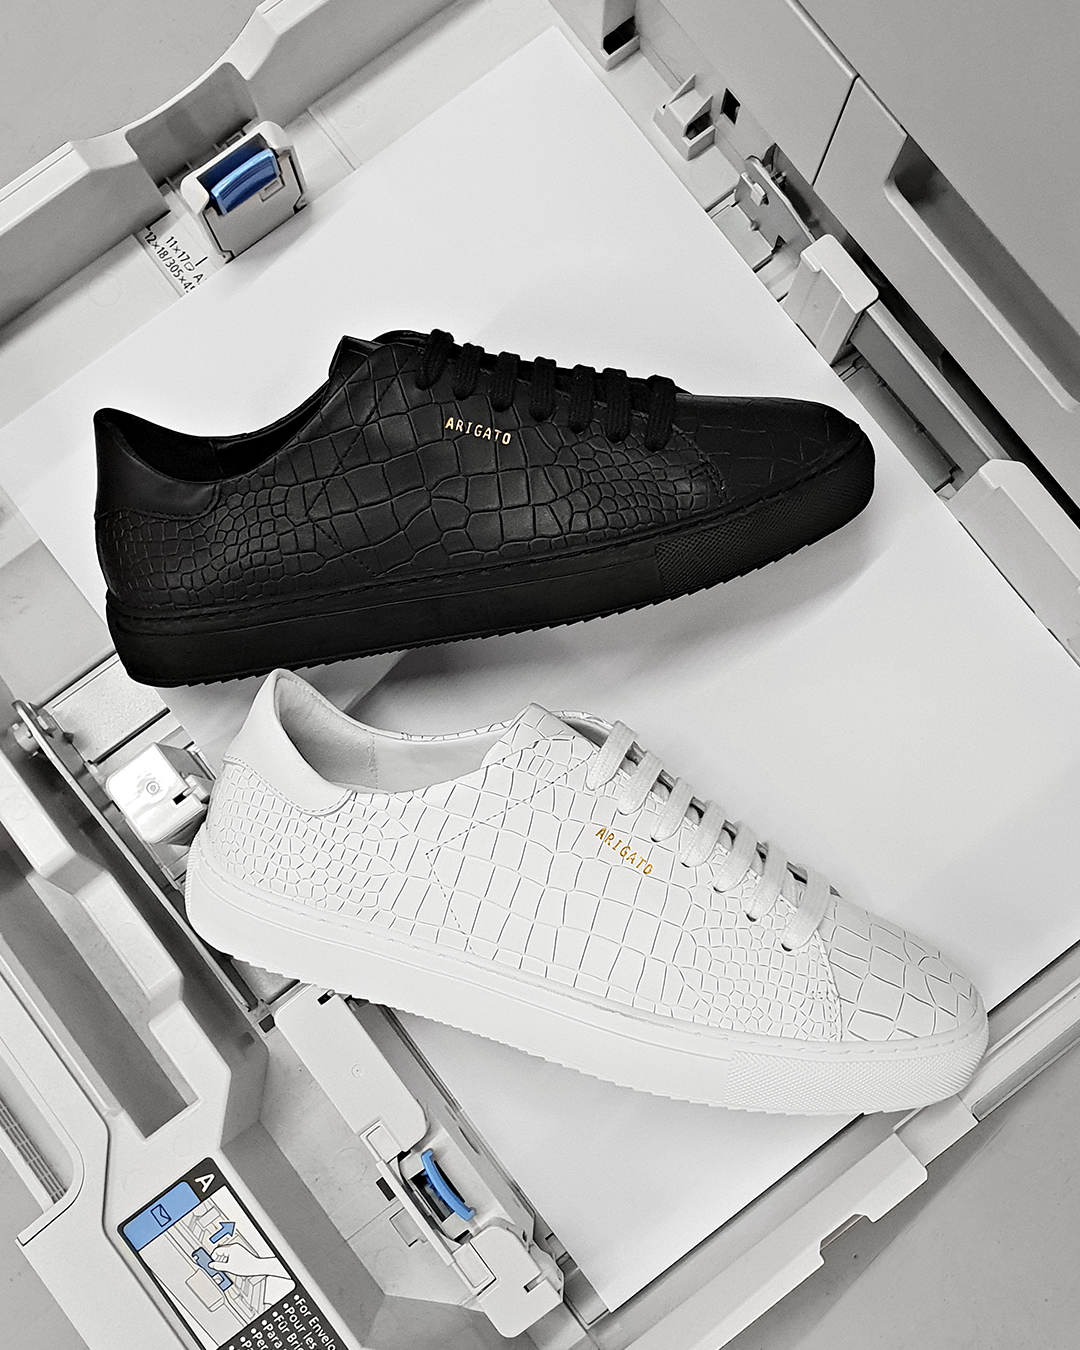 Axel Arigato: Clean 90 croc-leather has